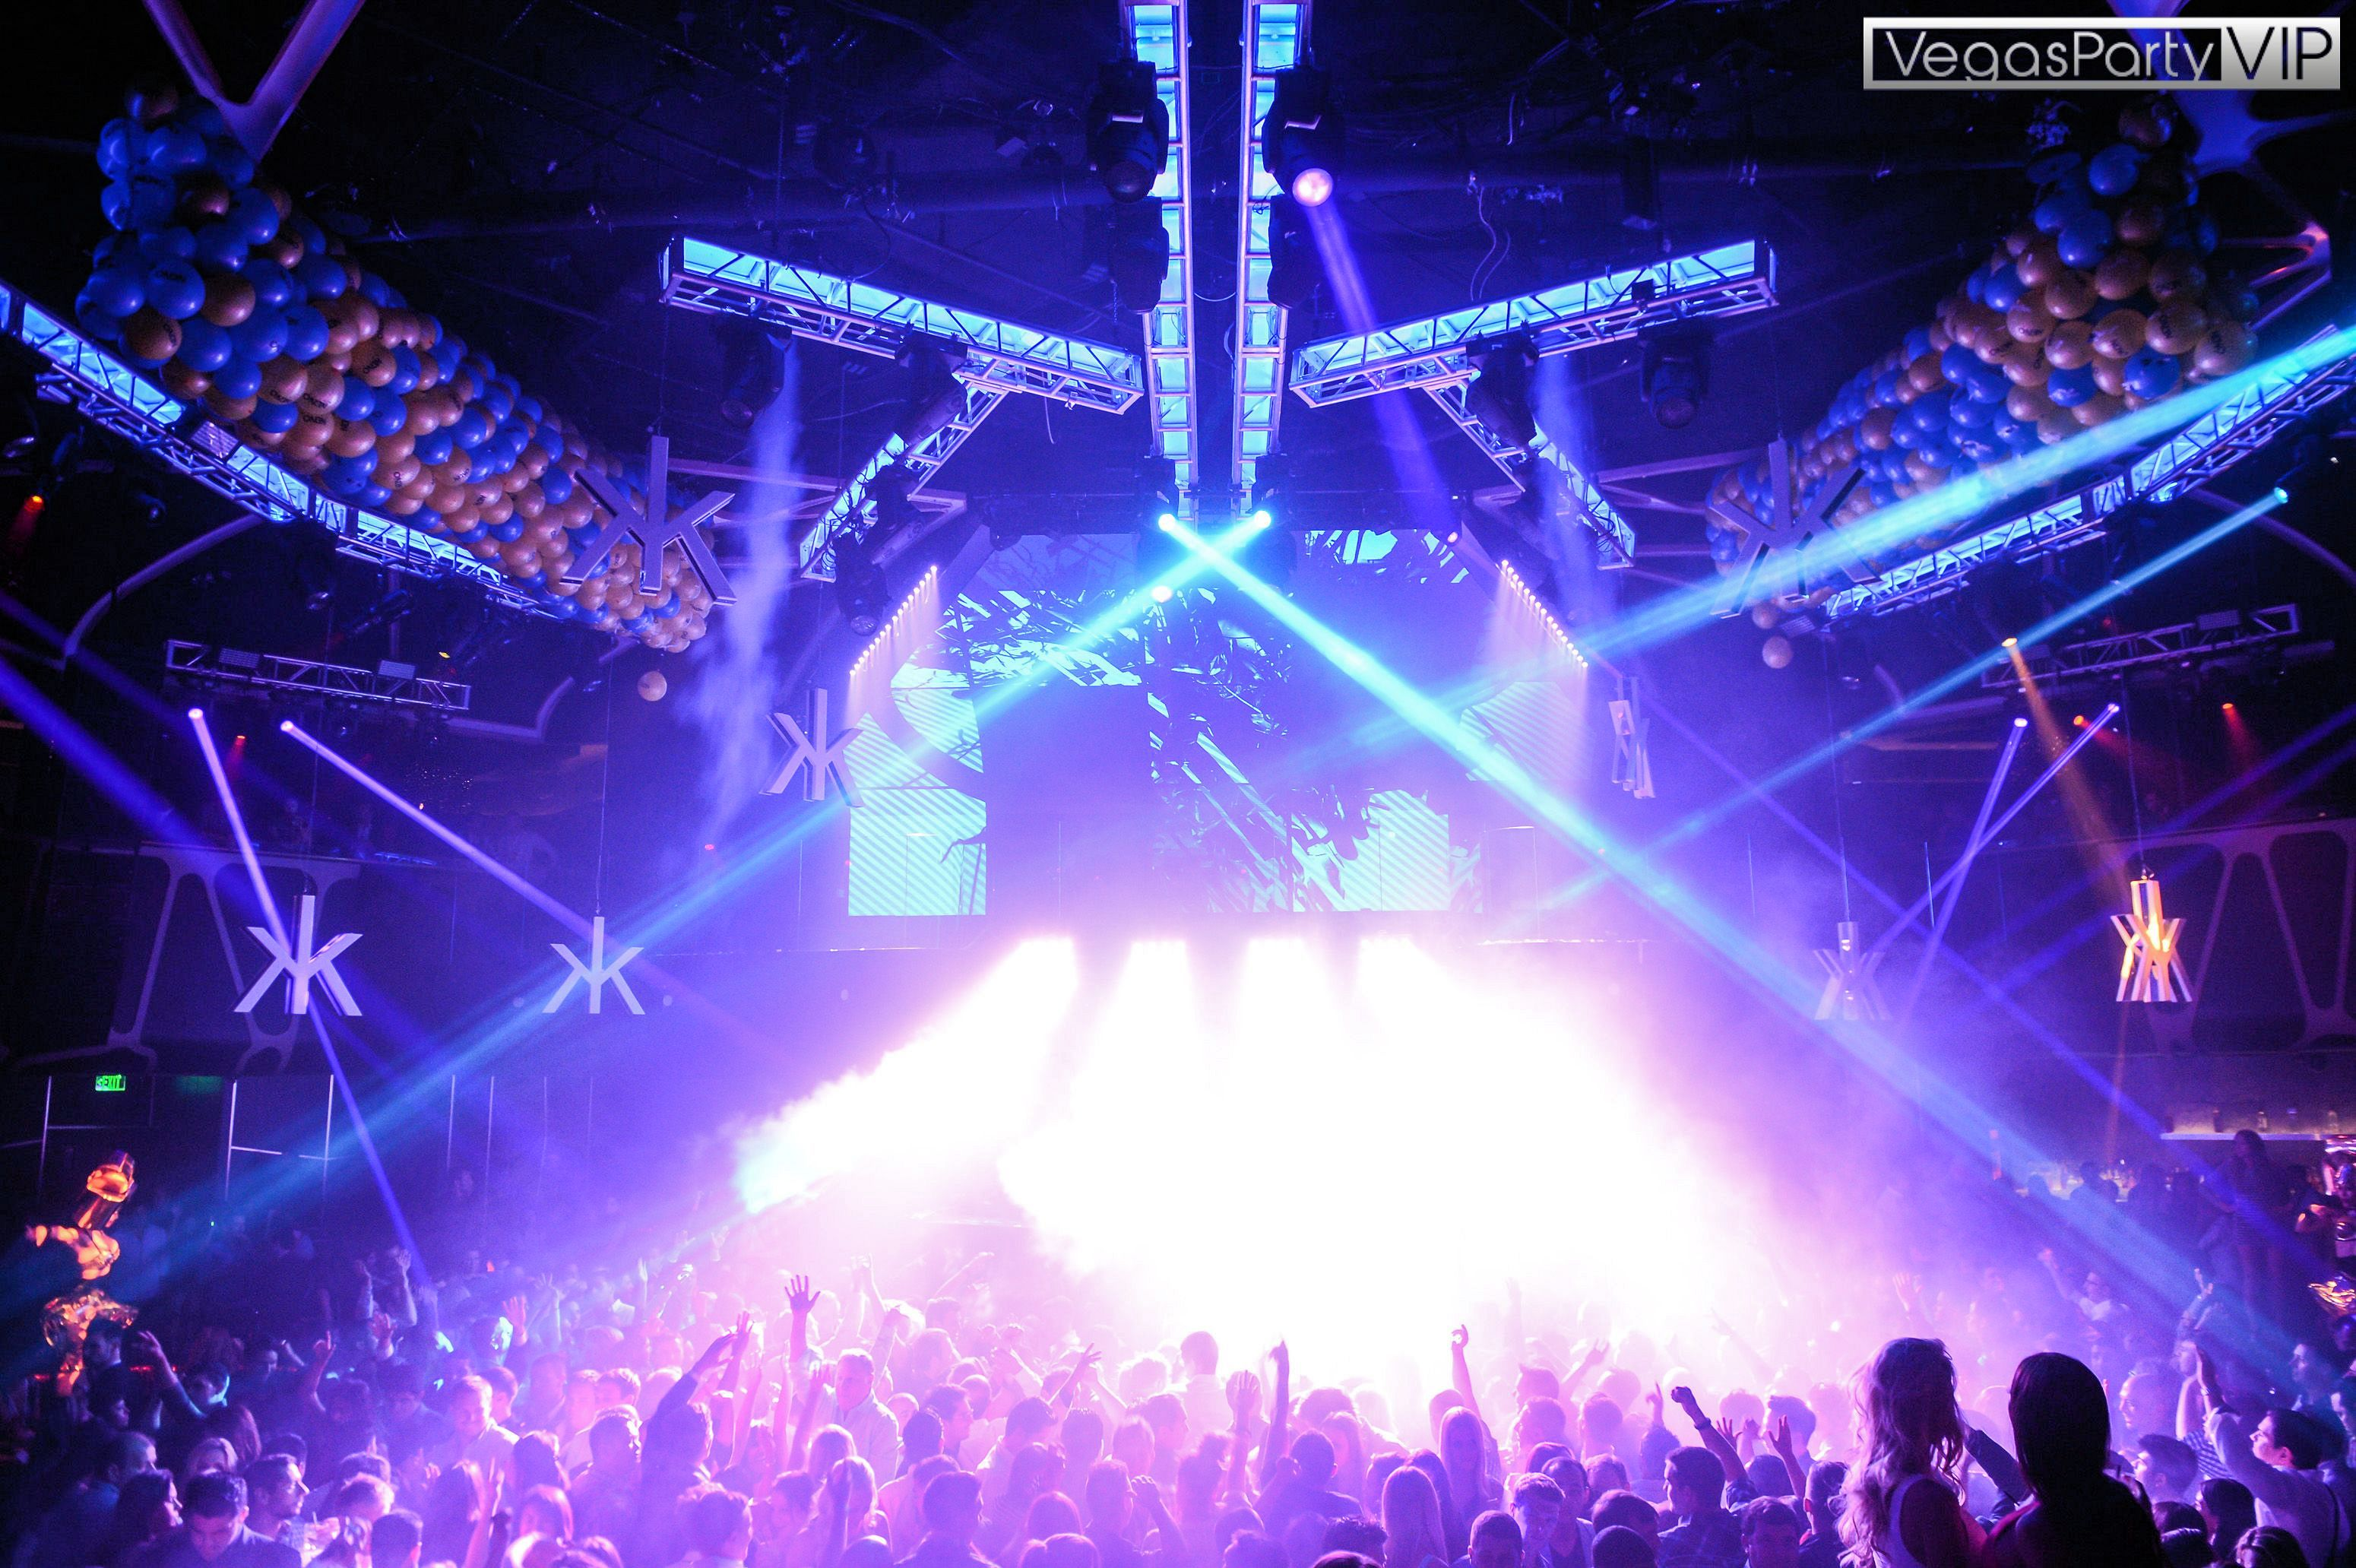 Top las vegas nightclubs for 2016 for Pool show las vegas 2016